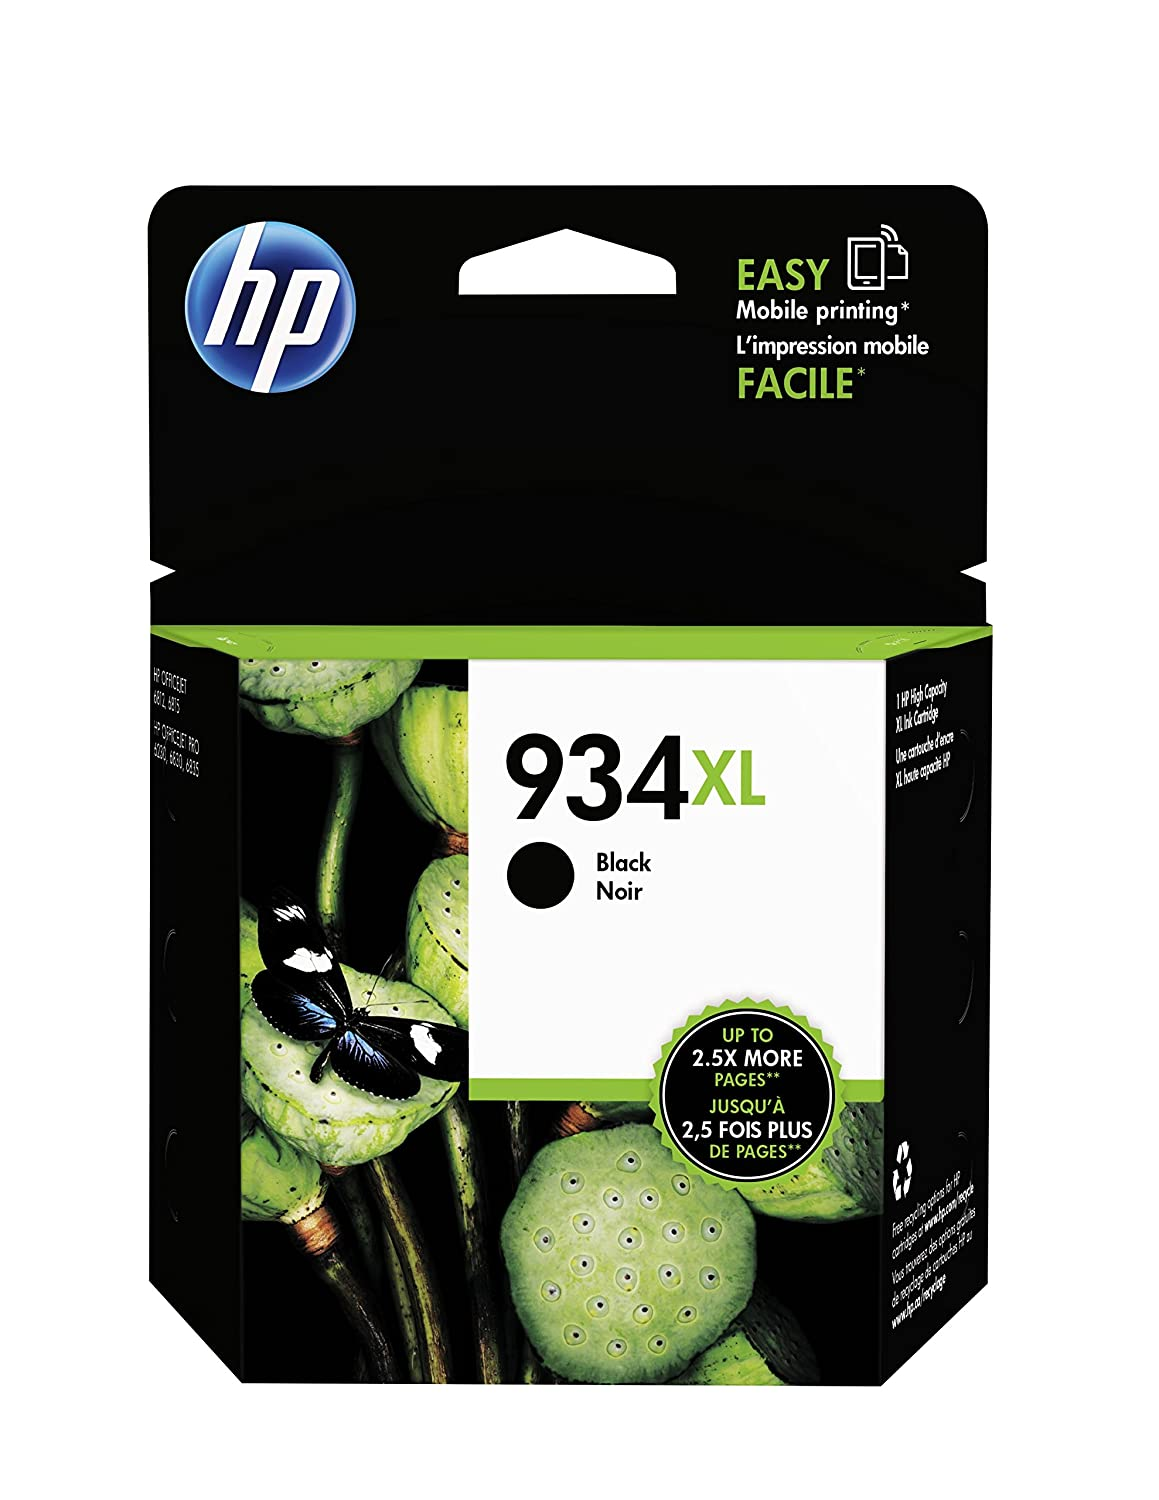 HP 934XL Black High Yield Original Ink Cartridge (C2P23AN) for HP Officejet 6812 6815 HP Officejet Pro 6230 6830 6835